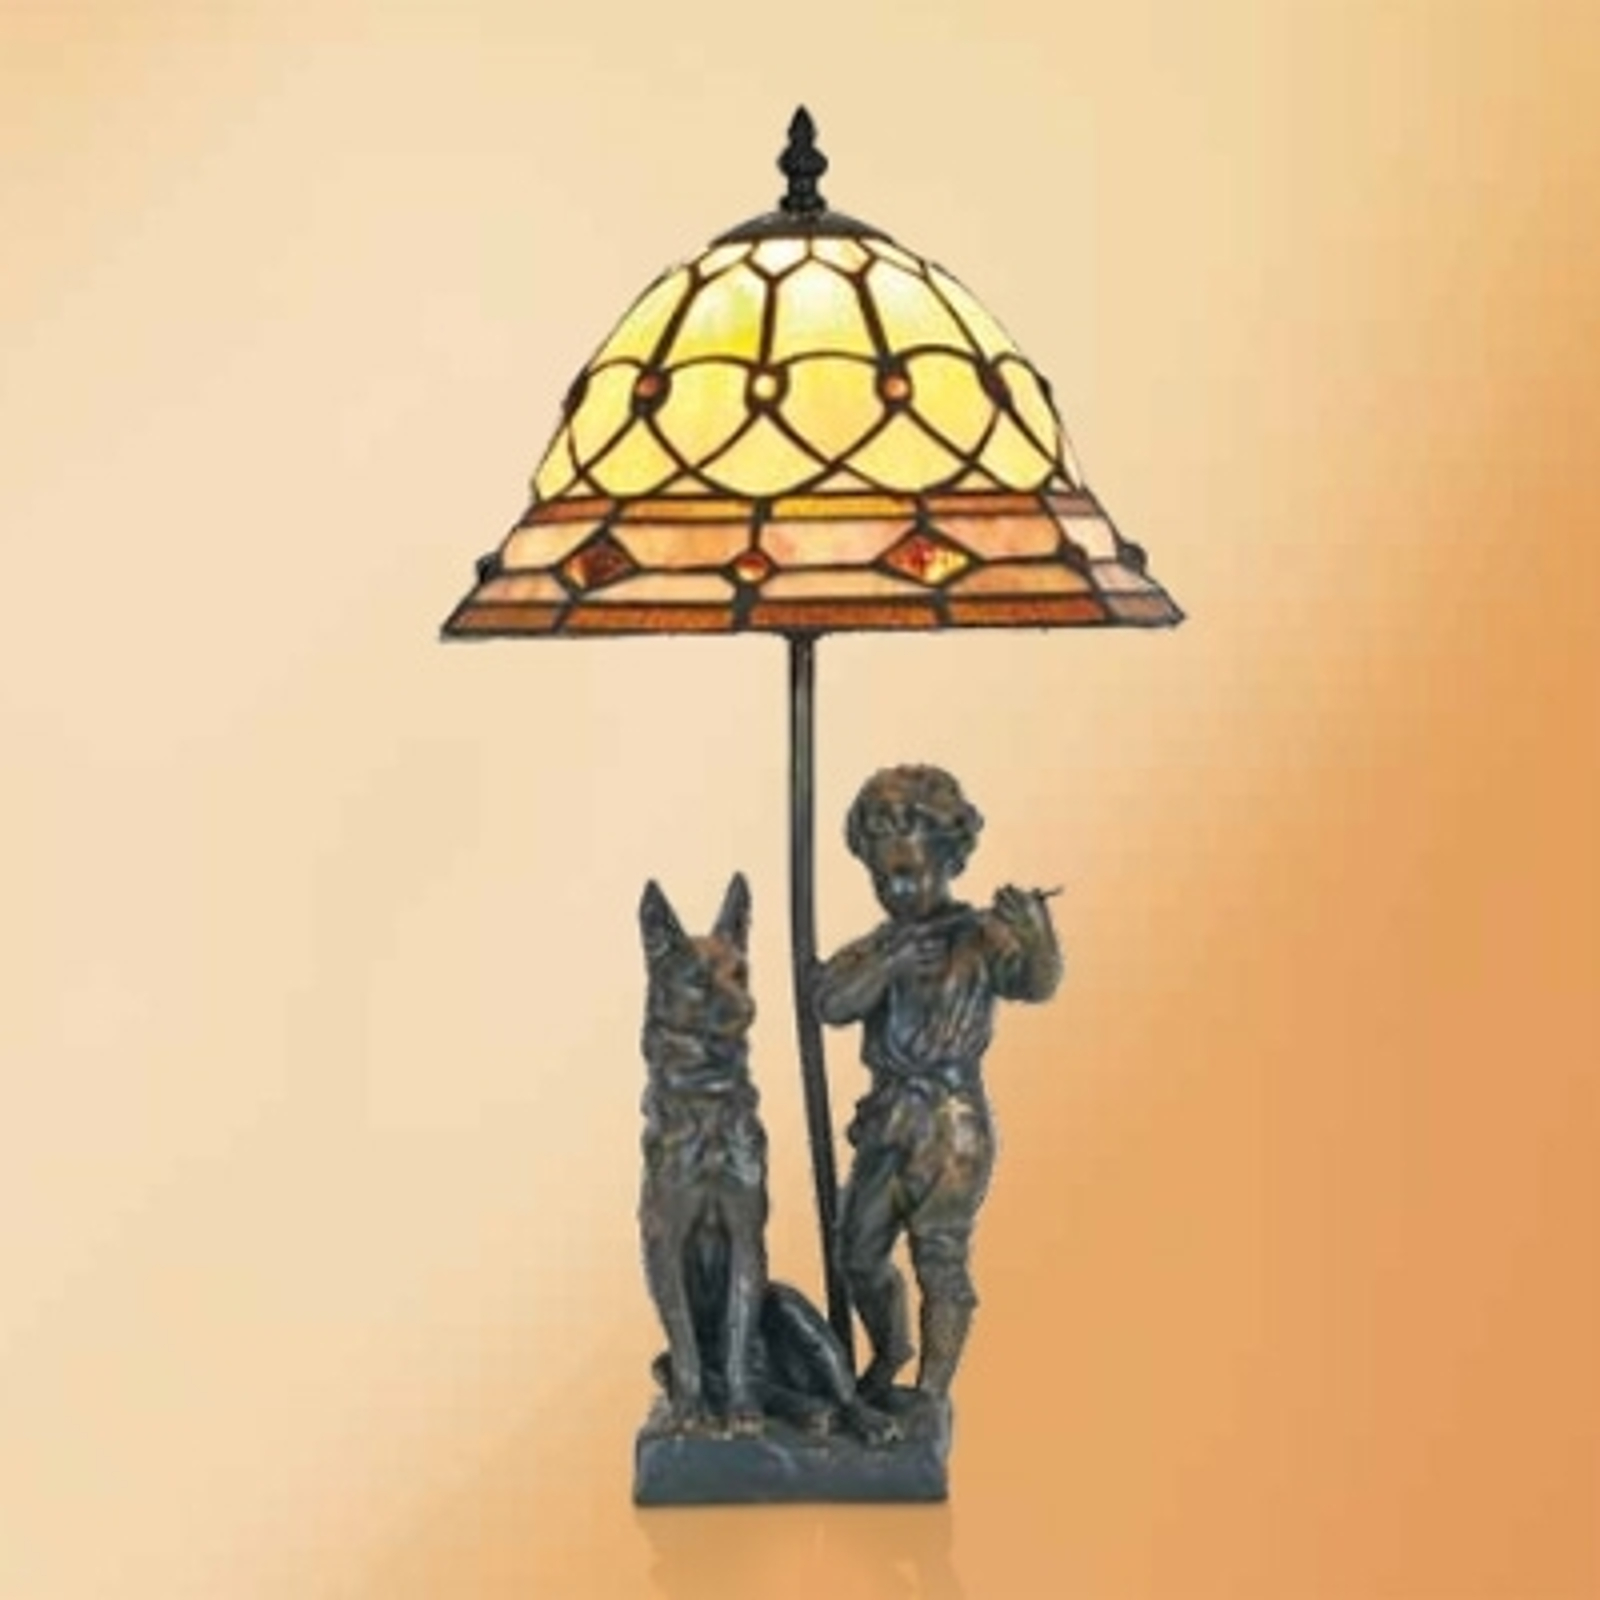 Hugo table lamp with resin figures, Tiffany style_1032299_1